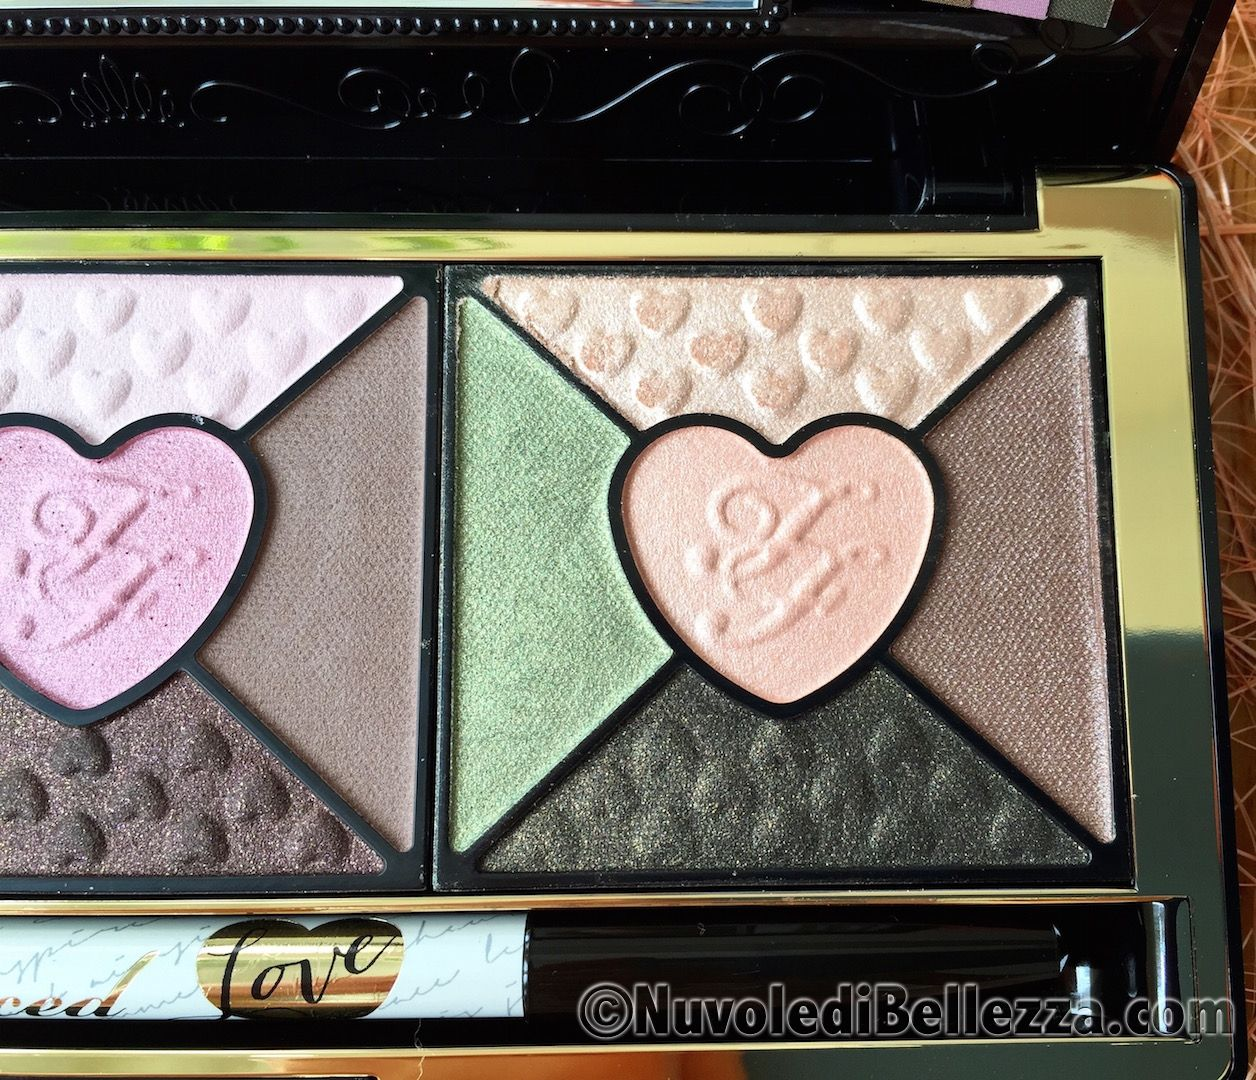 Love Eye Shadow Collection di Too Faced Recensione - Nuvole di Bellezza